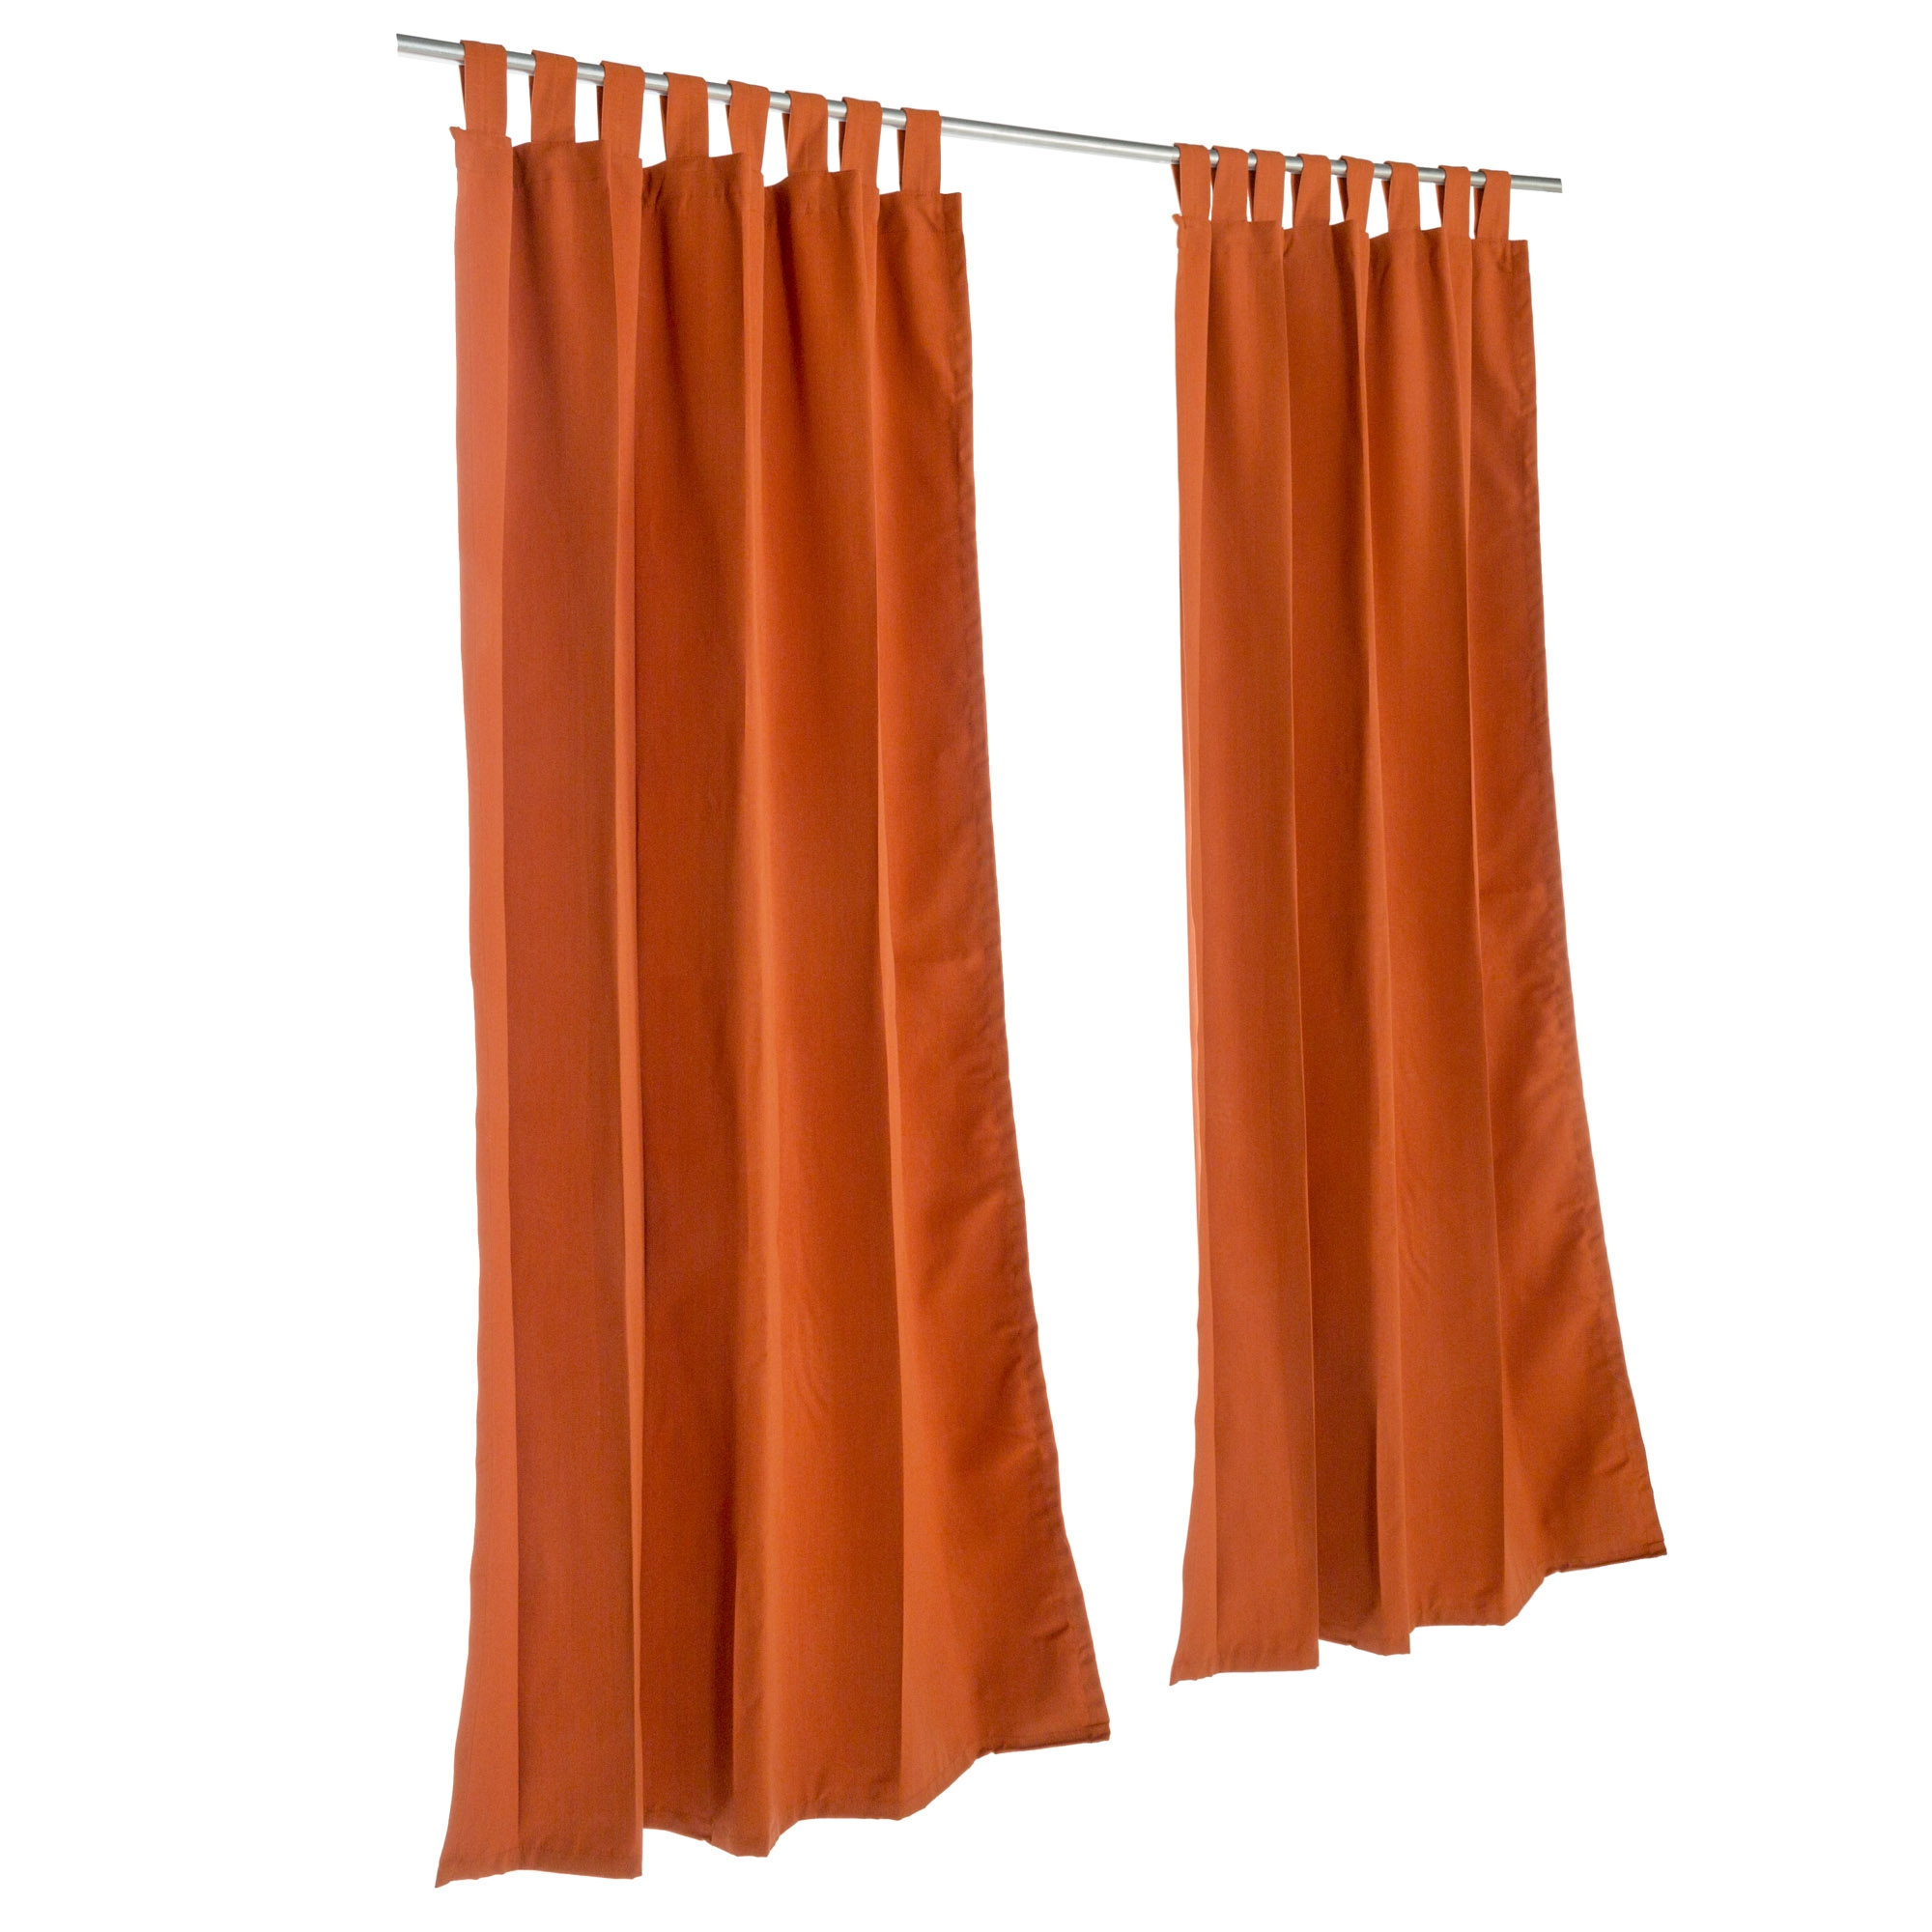 Sunbrella Curtains | Sunbrella Cushions for Outdoor Furniture | Sunbrella Outdoor Chair Cushions